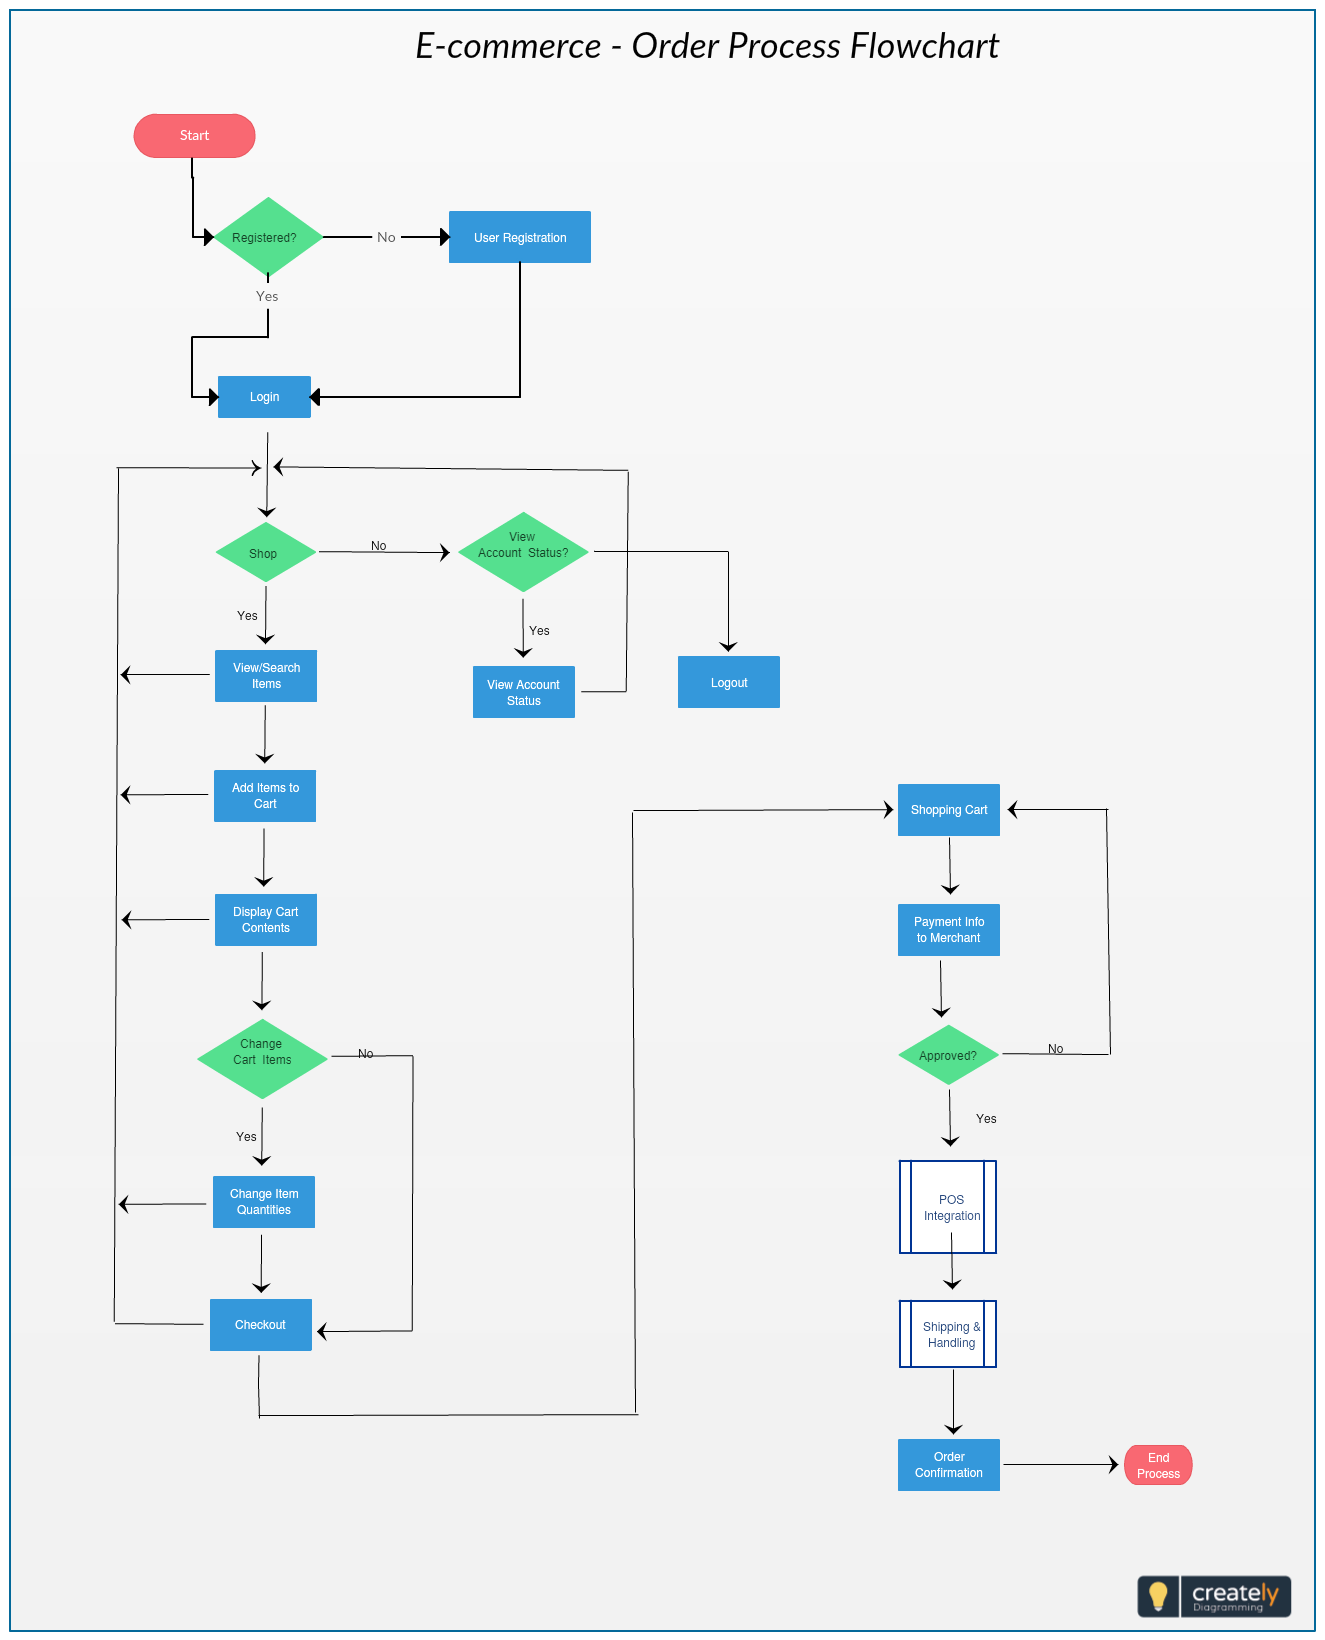 medium resolution of in order to maximise sales opportunities and stay cost competitive mapping out your ecommerce processes flowchart can help your business highlight key